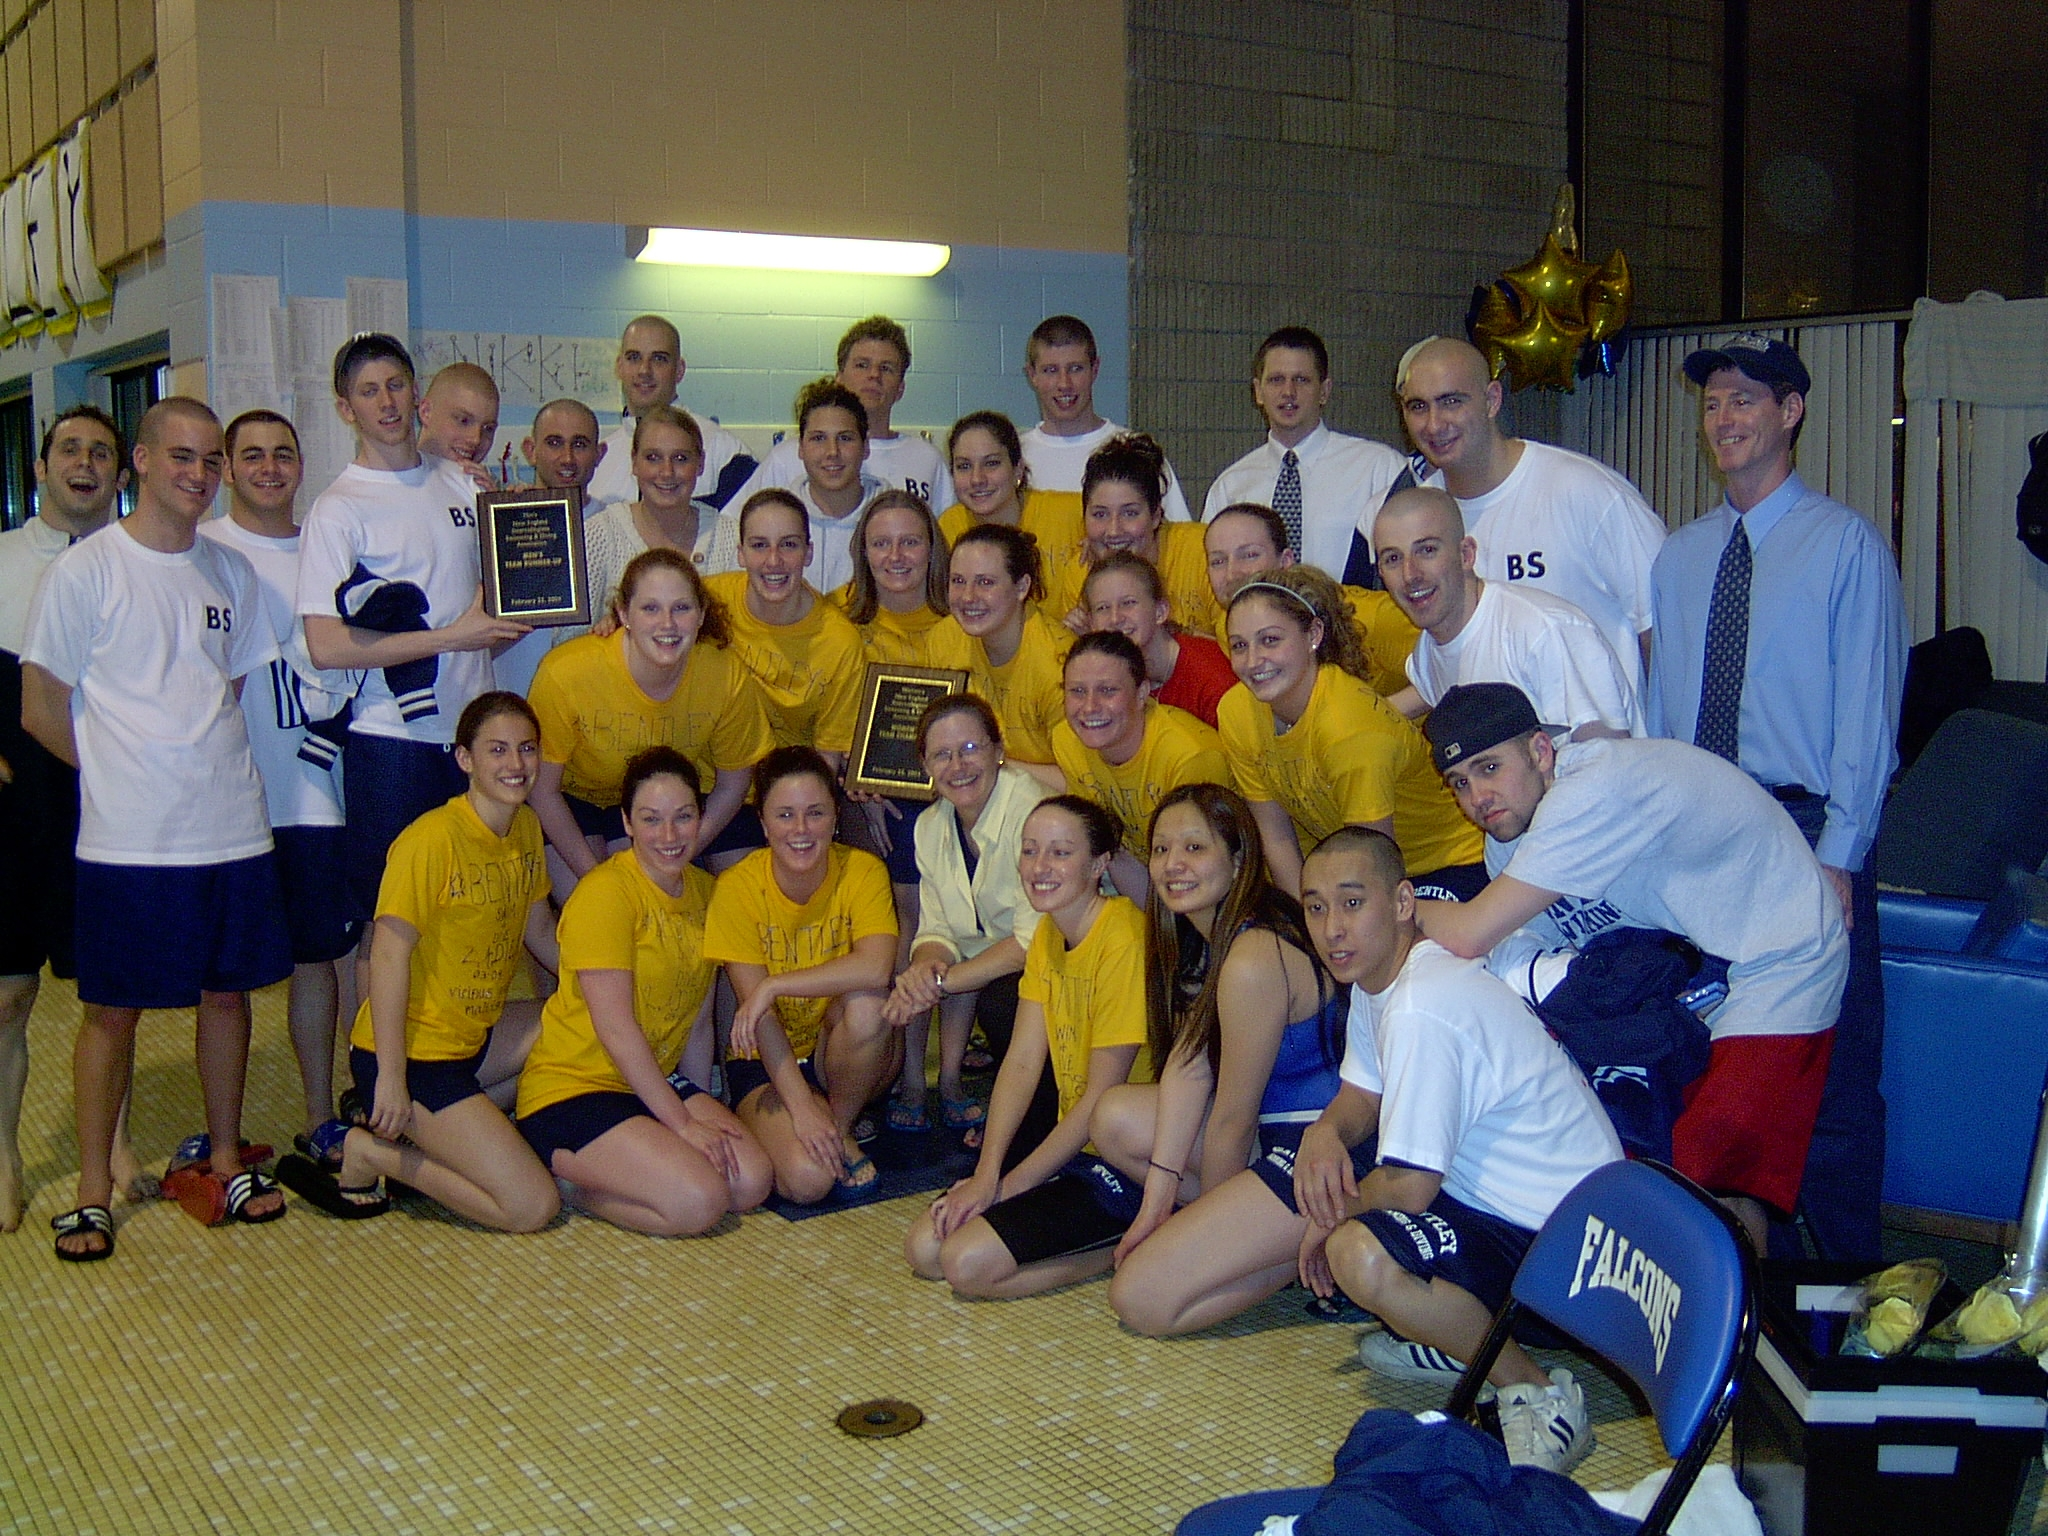 Bentley Swim Team '04 champs!